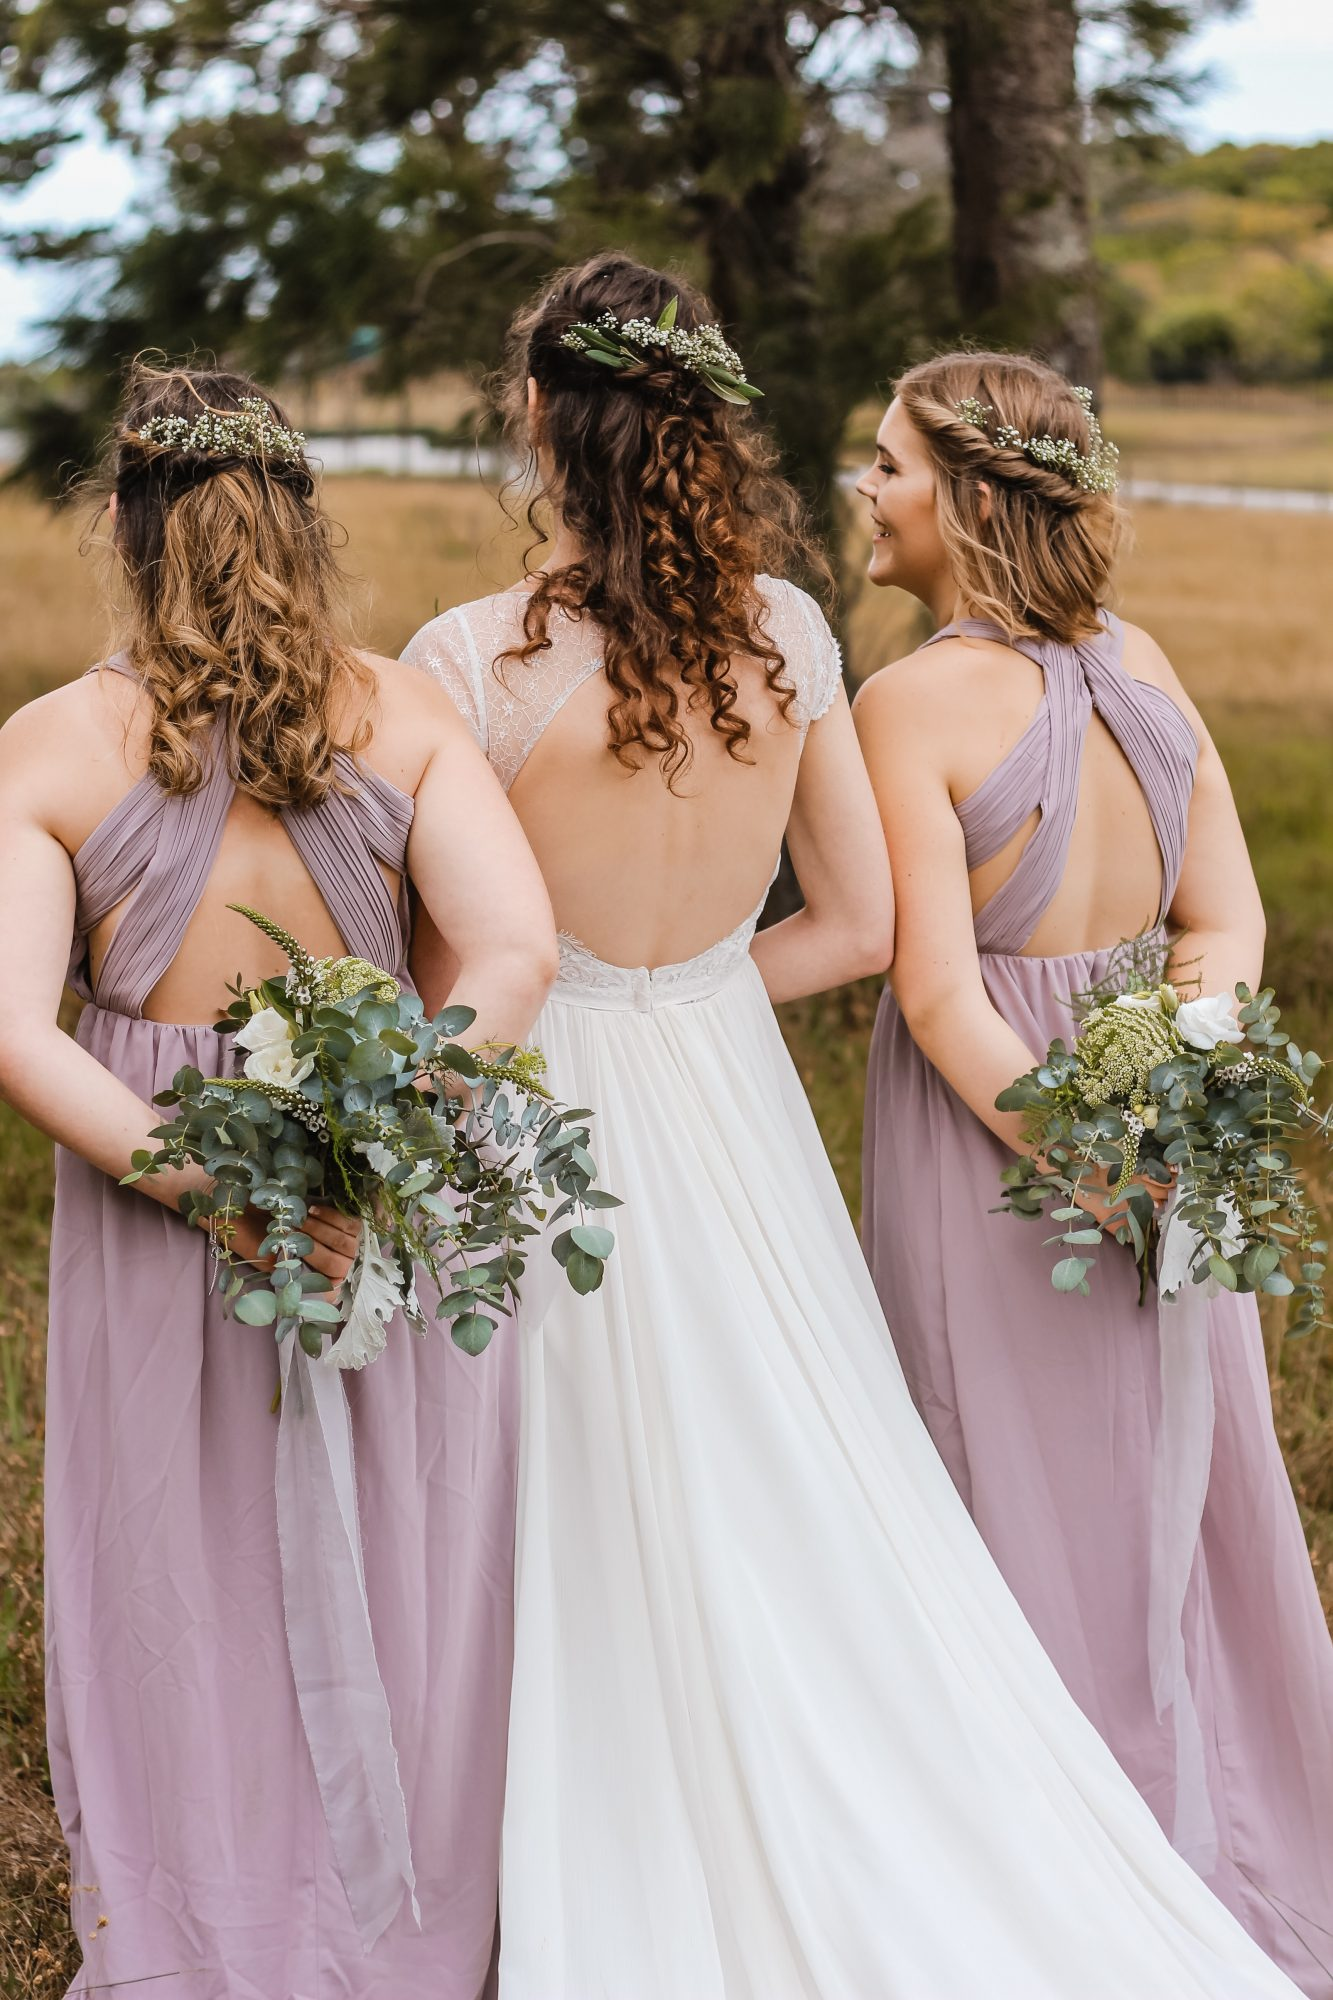 Bride and bridesmaids walking away holding bouquets